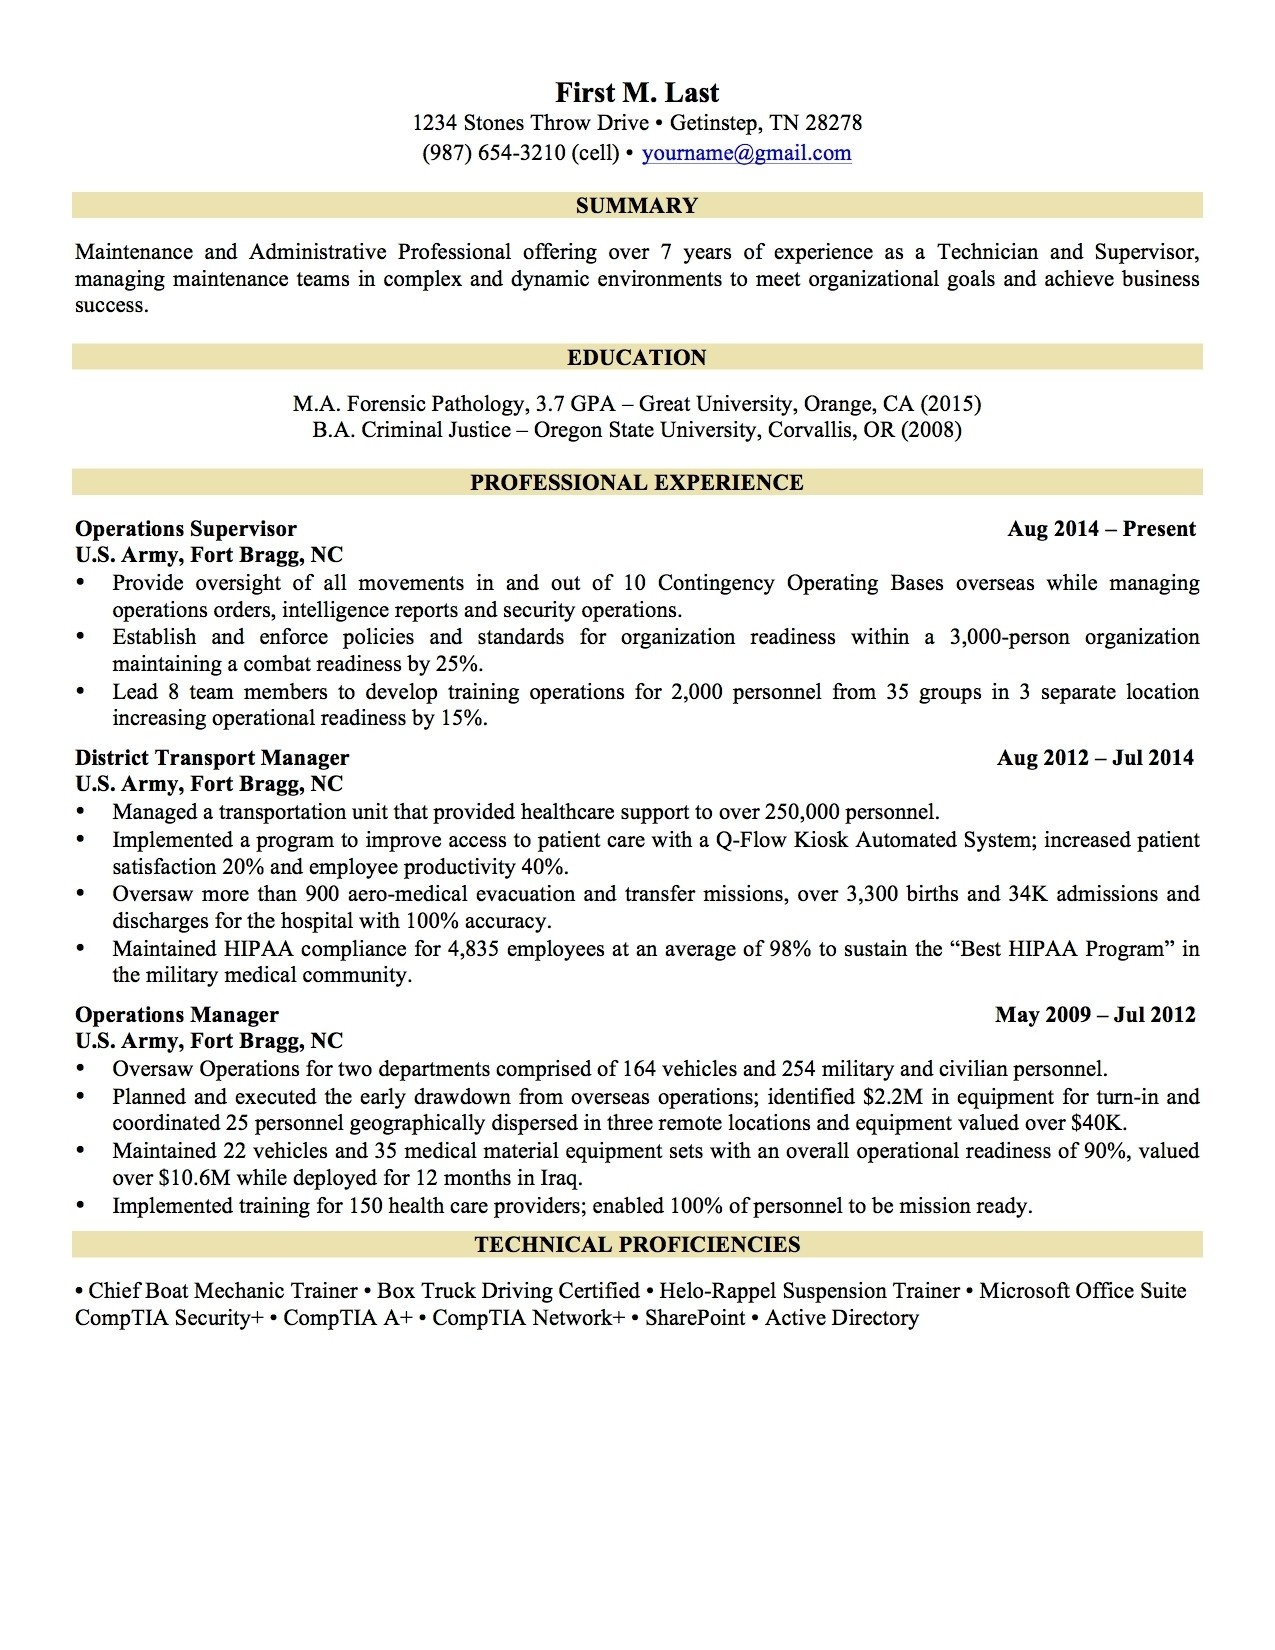 Security Resume Examples - Resume Examples Professional Experience Inspirational Fresh Grapher